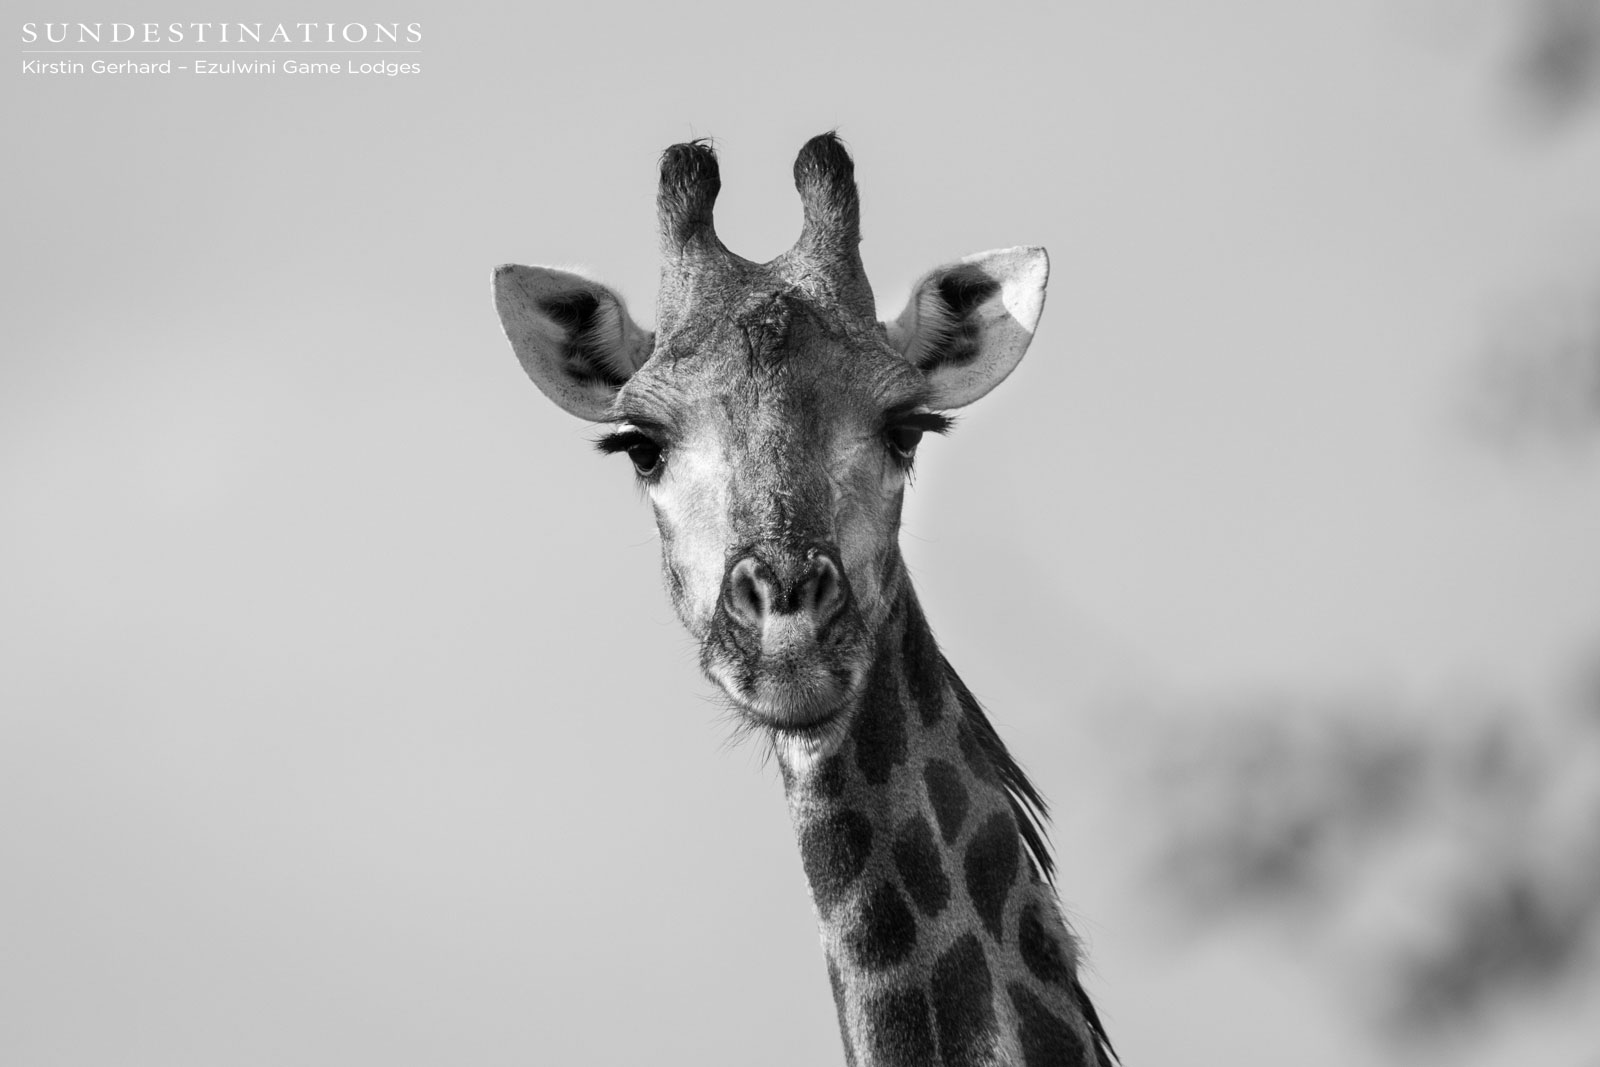 Giraffe at Ezulwini Game Lodges